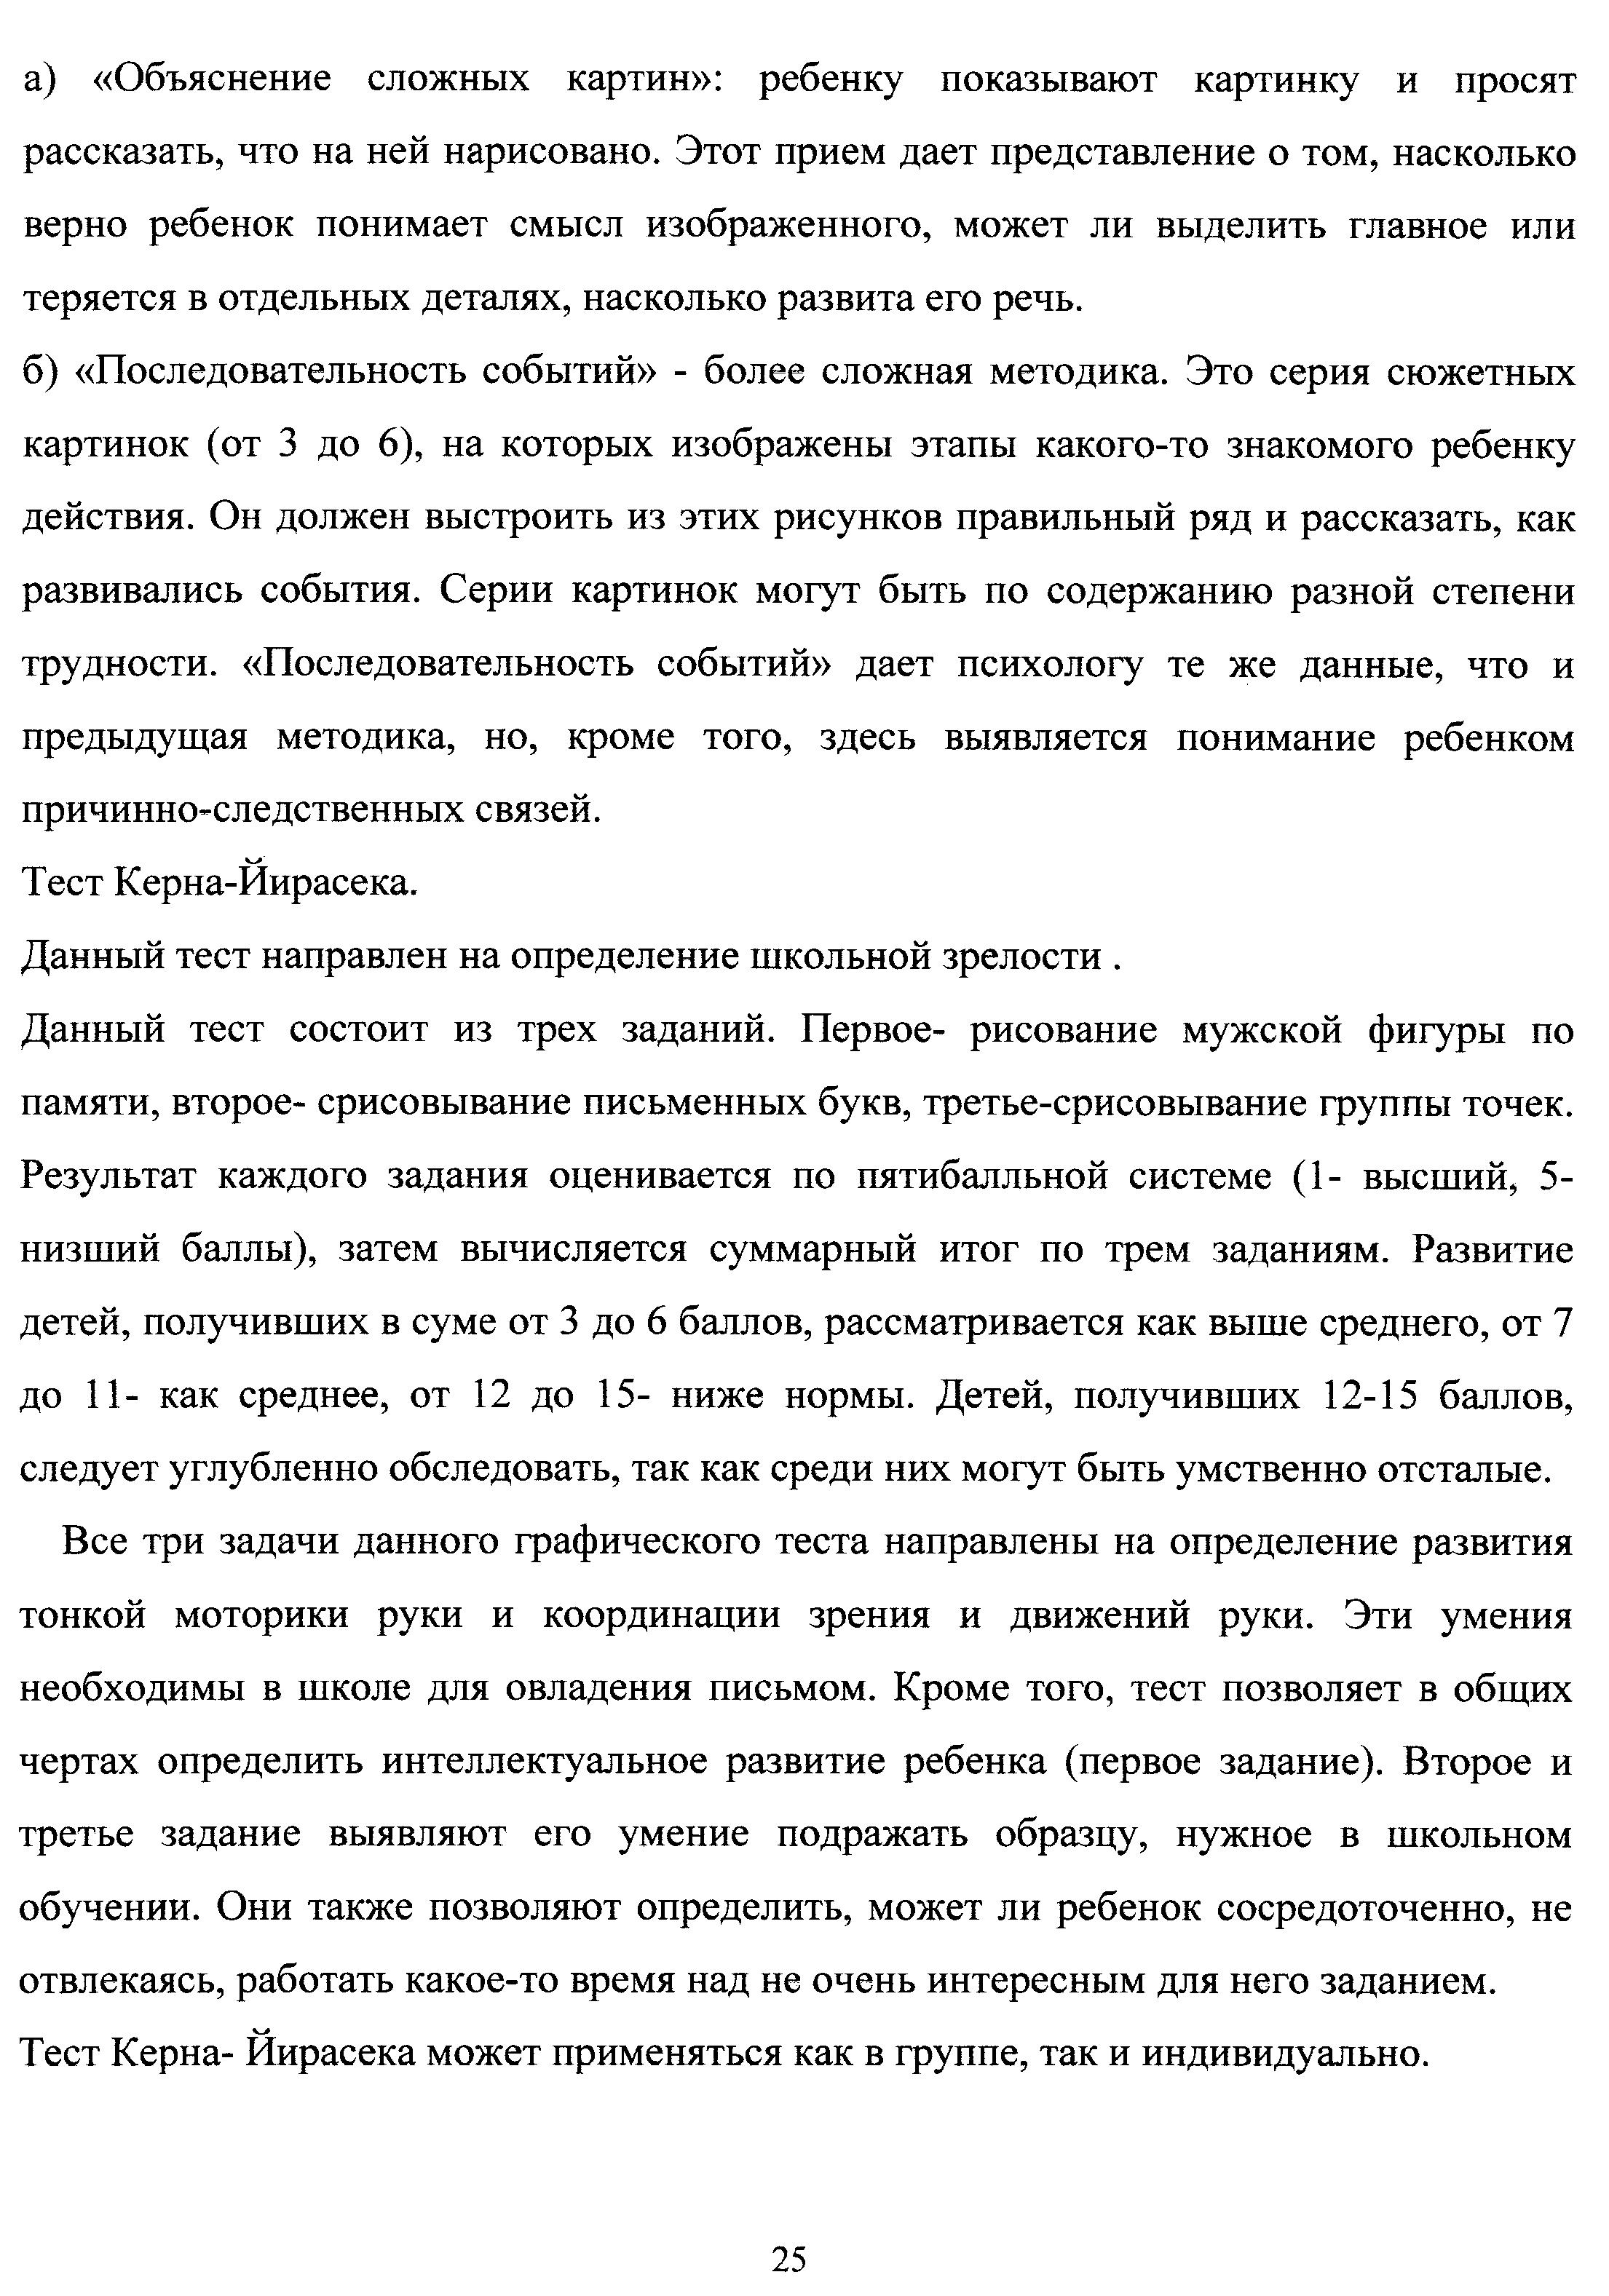 C:\Users\ЛАРИСА\Documents\Scanned Documents\Рисунок (129).jpg